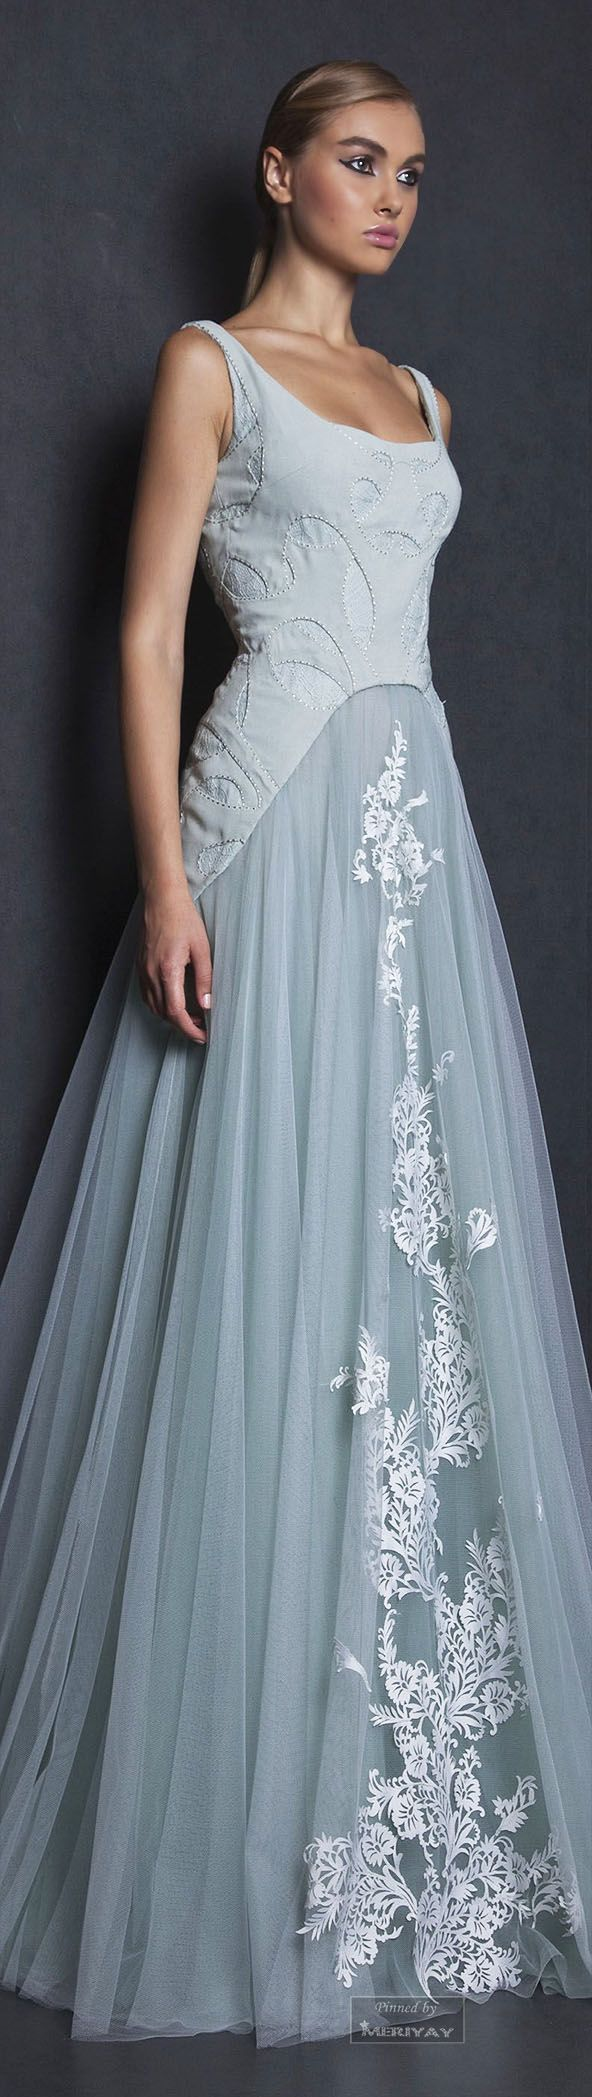 355 best Wedding Dresses images on Pinterest | Wedding gowns, Bridal ...